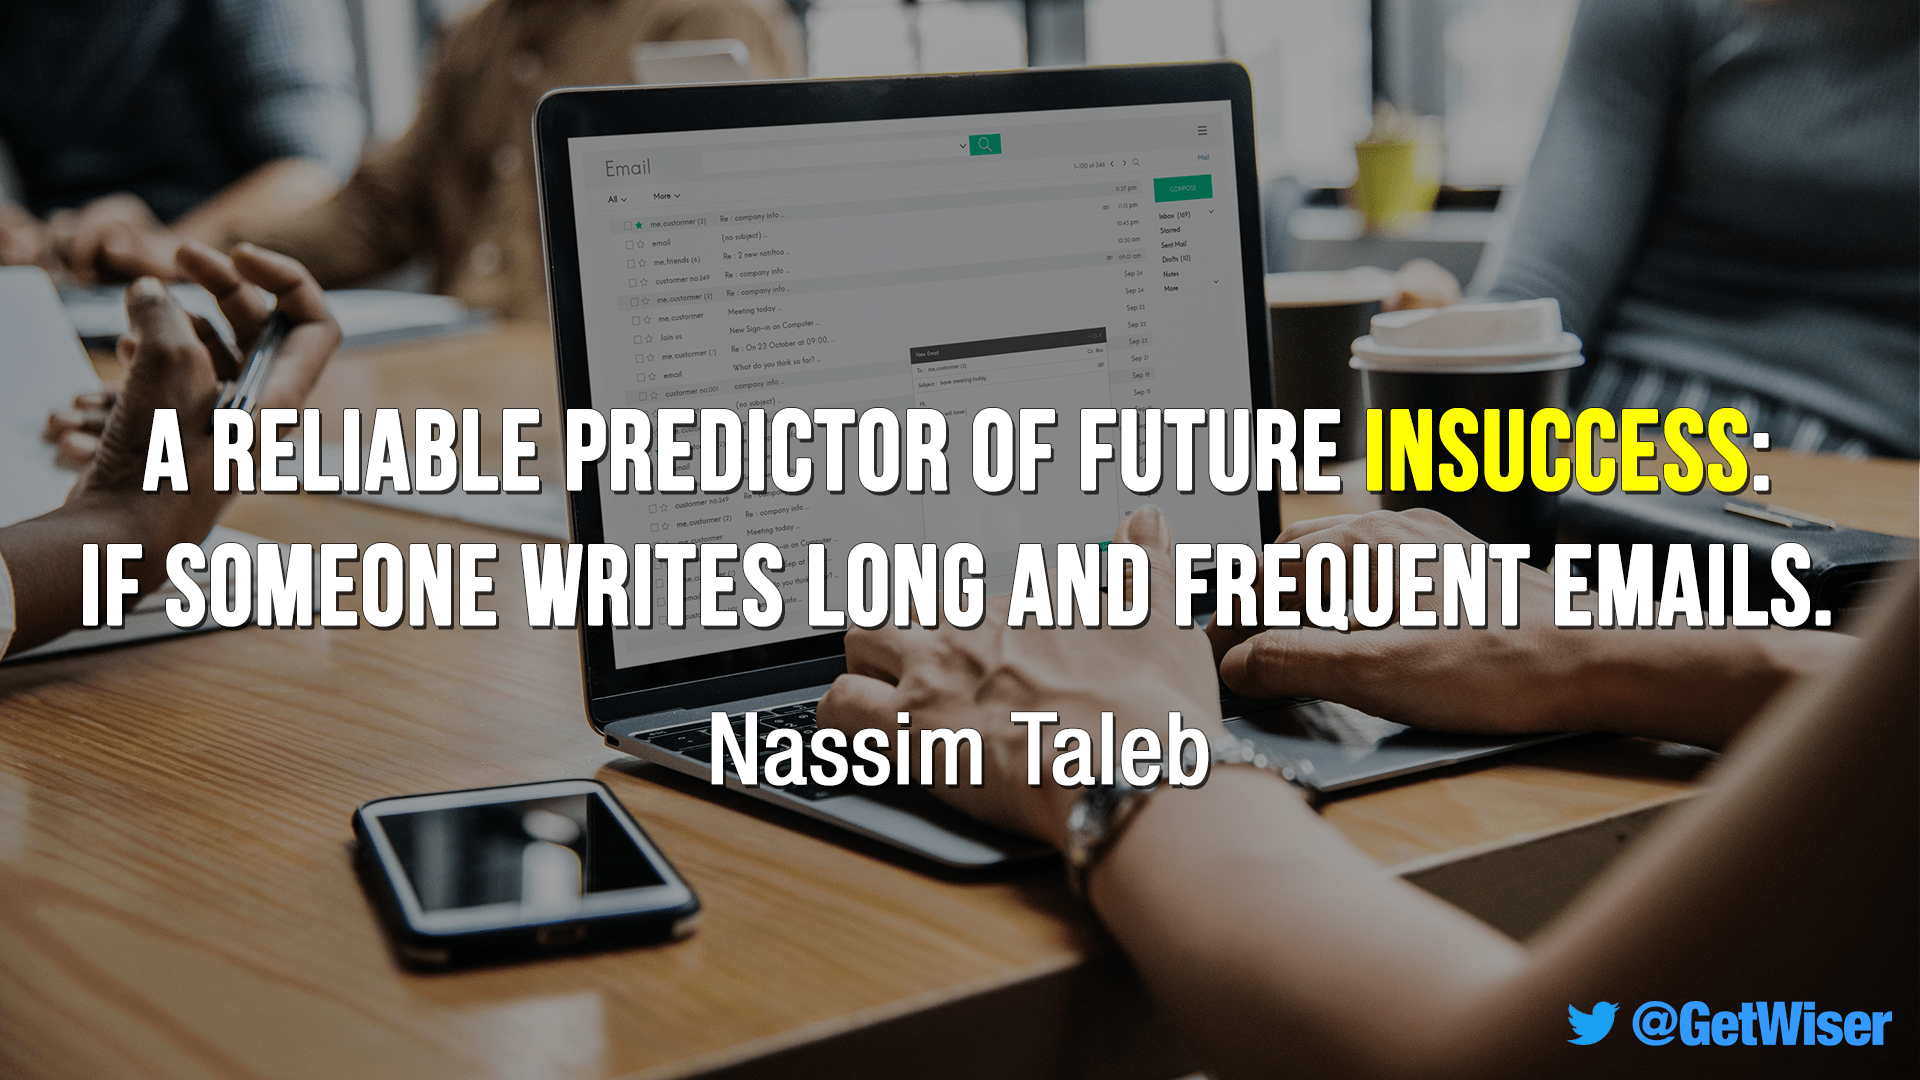 """A reliable predictor of future insuccess: if someone writes long and frequent emails."" – Nassim Taleb [1920×1080]"